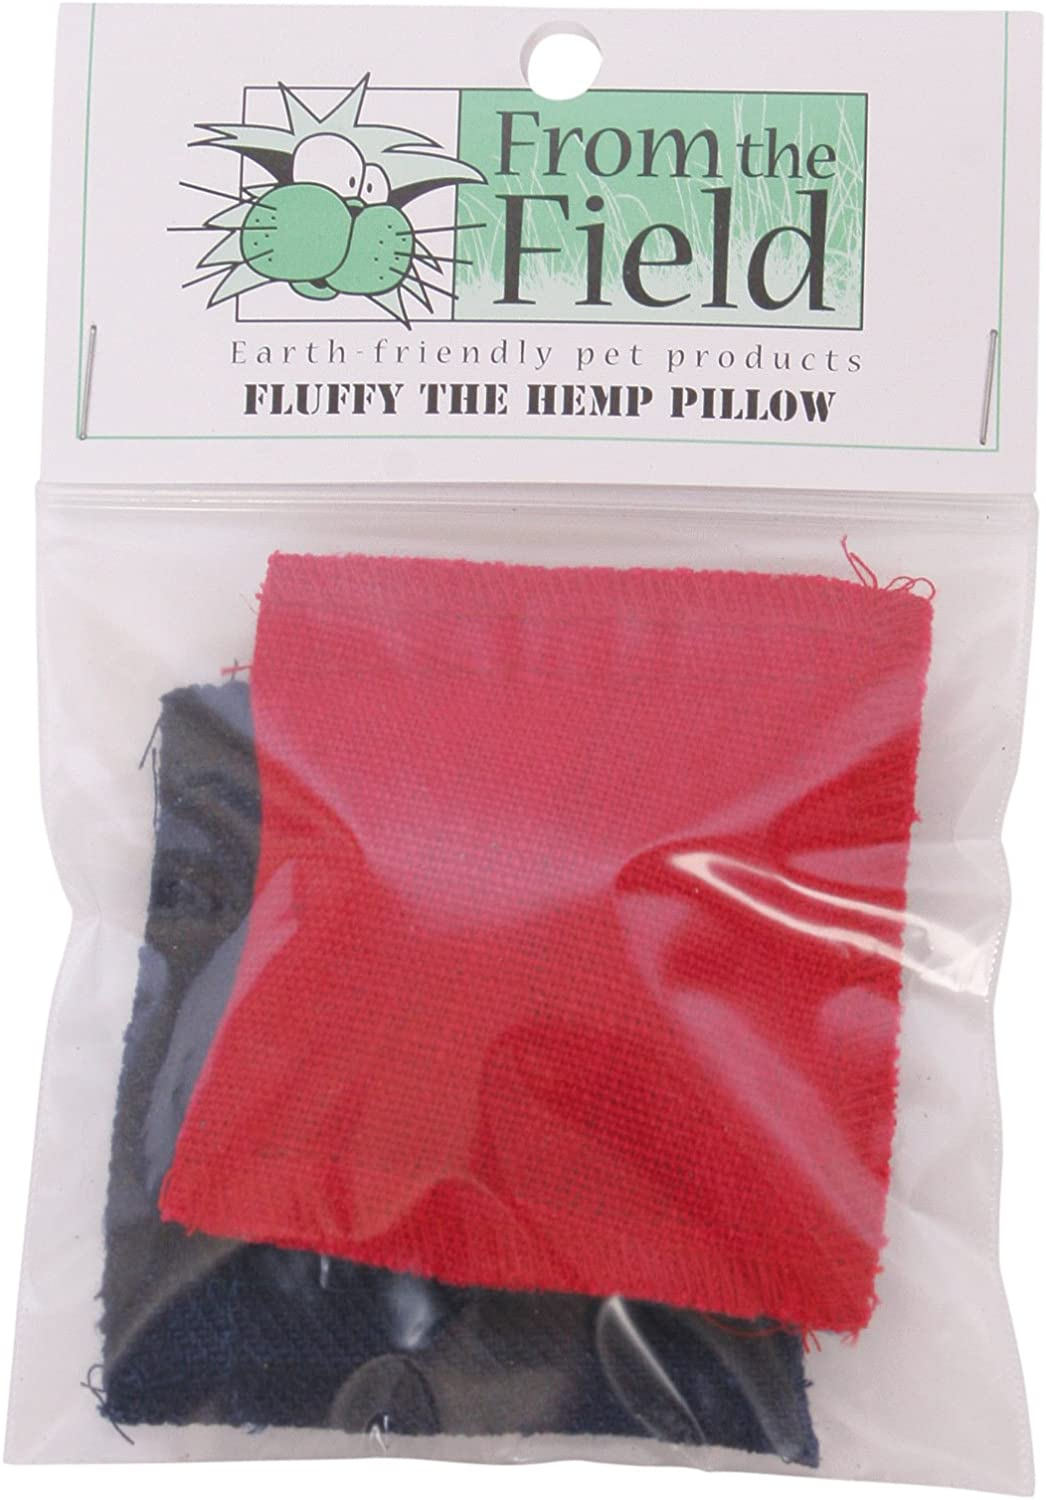 From Selling rankings The Field 2-Pack Max 74% OFF Fluffy Catnip Pillow Toy Hemp